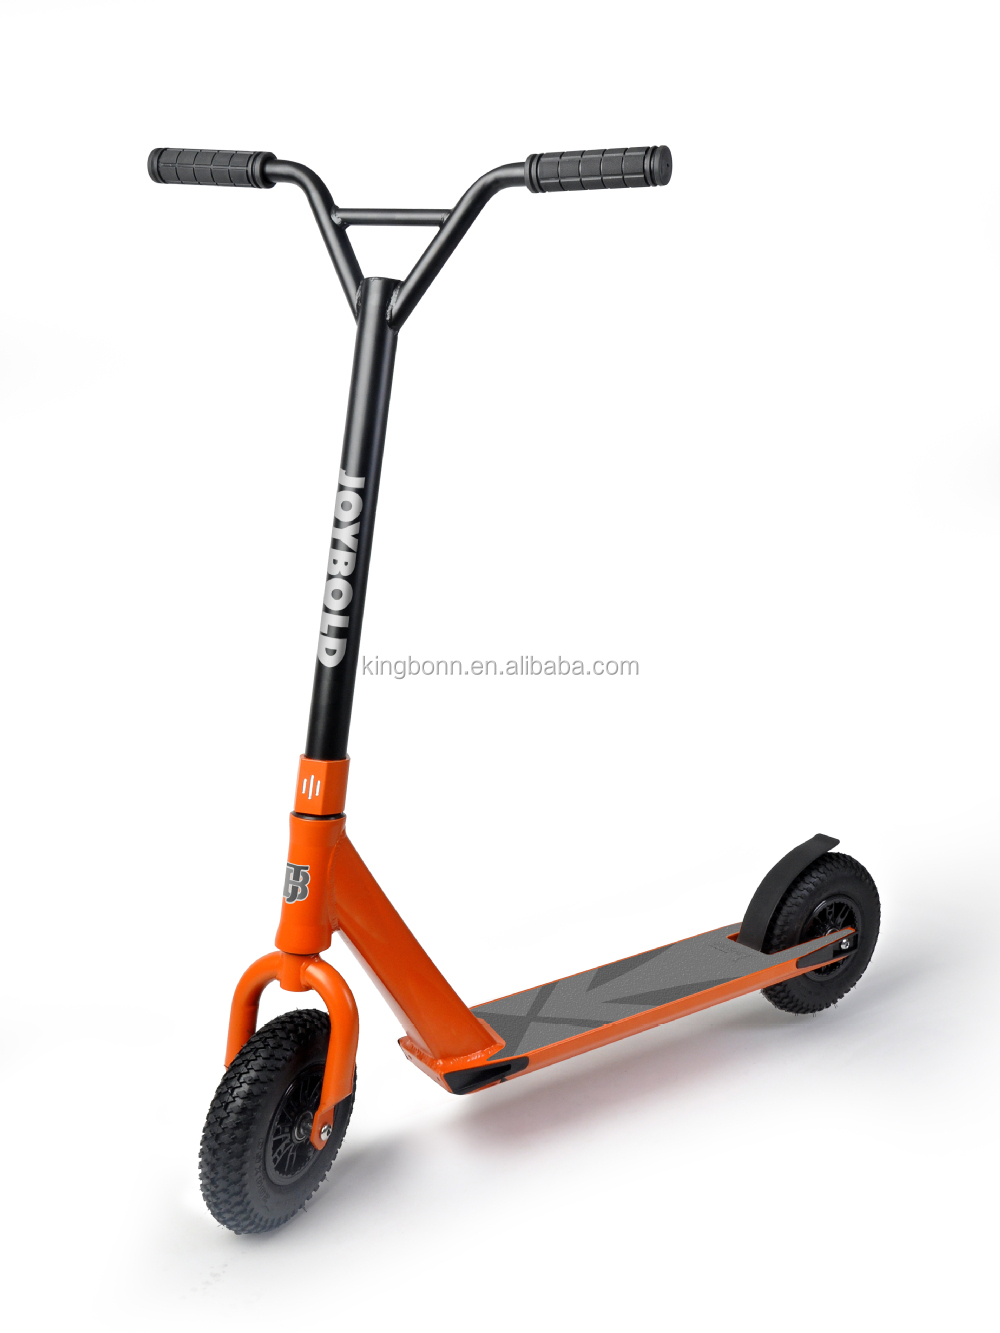 JOYBOLD Hot Selling Air Wheel Scooter, Professional High End Stunt Scooter Air Wheel Scooter